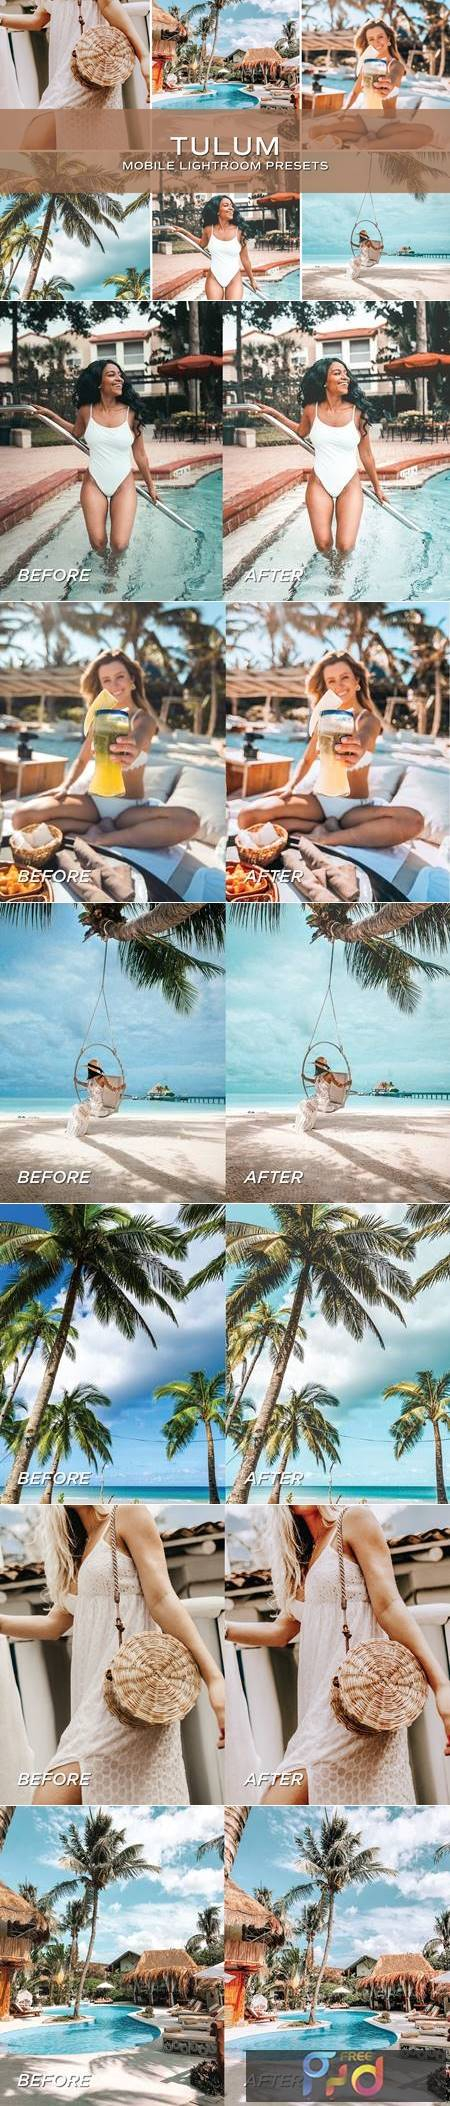 5 Tulum Lightroom Presets 5701236 1